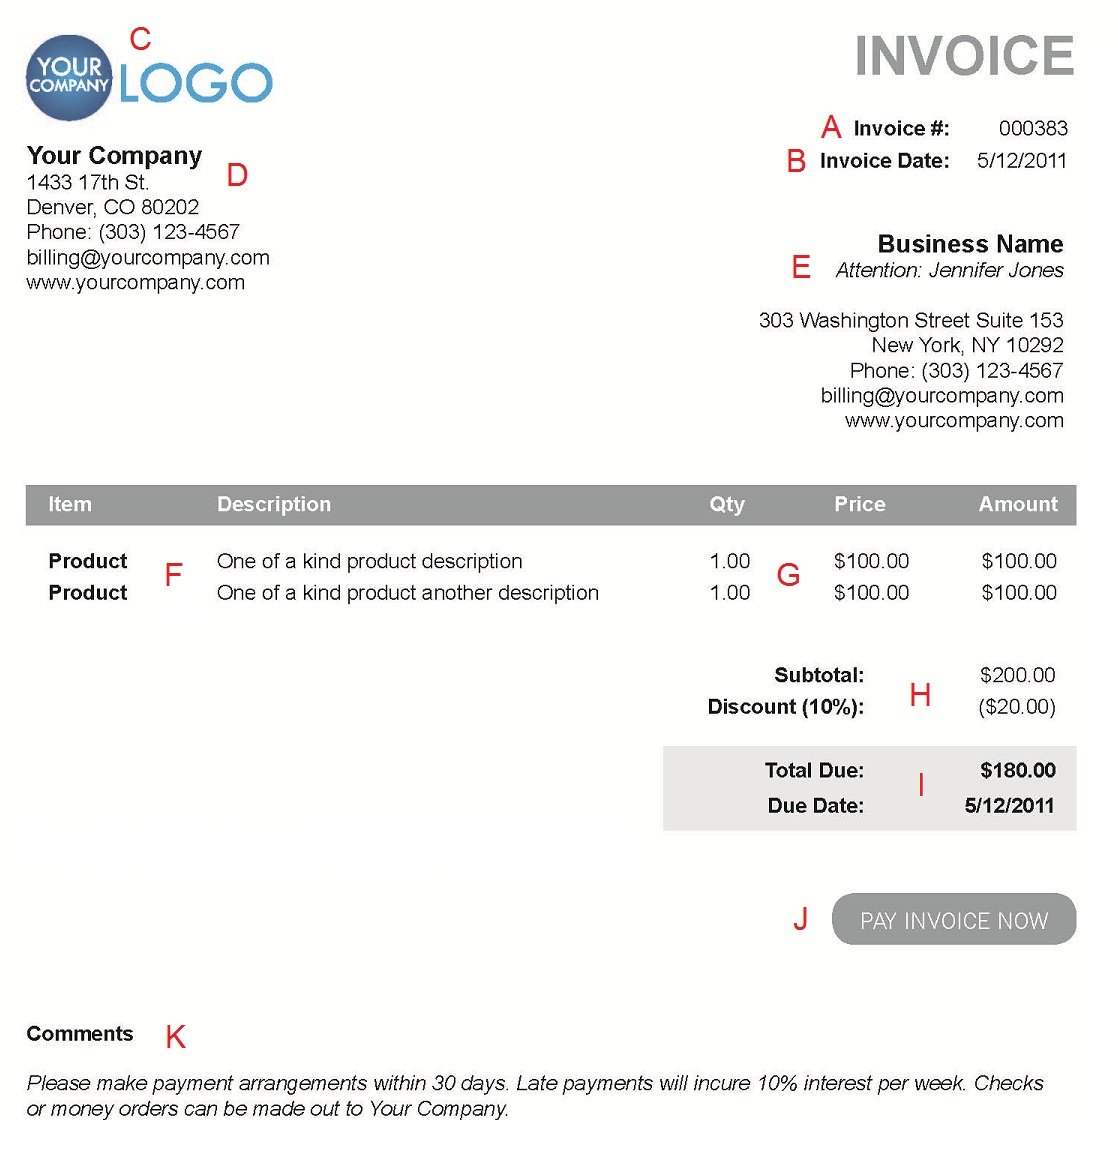 Floobydustus  Pretty The  Different Sections Of An Electronic Payment Invoice With Goodlooking A  With Easy On The Eye Dealer Invoice For New Cars Also Excise Invoice Format In Addition Invoice Timesheet Template And Blank Invoice Template Printable As Well As Quickbooks Invoicing Software Additionally Invoice Factoring Explained From Paysimplecom With Floobydustus  Goodlooking The  Different Sections Of An Electronic Payment Invoice With Easy On The Eye A  And Pretty Dealer Invoice For New Cars Also Excise Invoice Format In Addition Invoice Timesheet Template From Paysimplecom